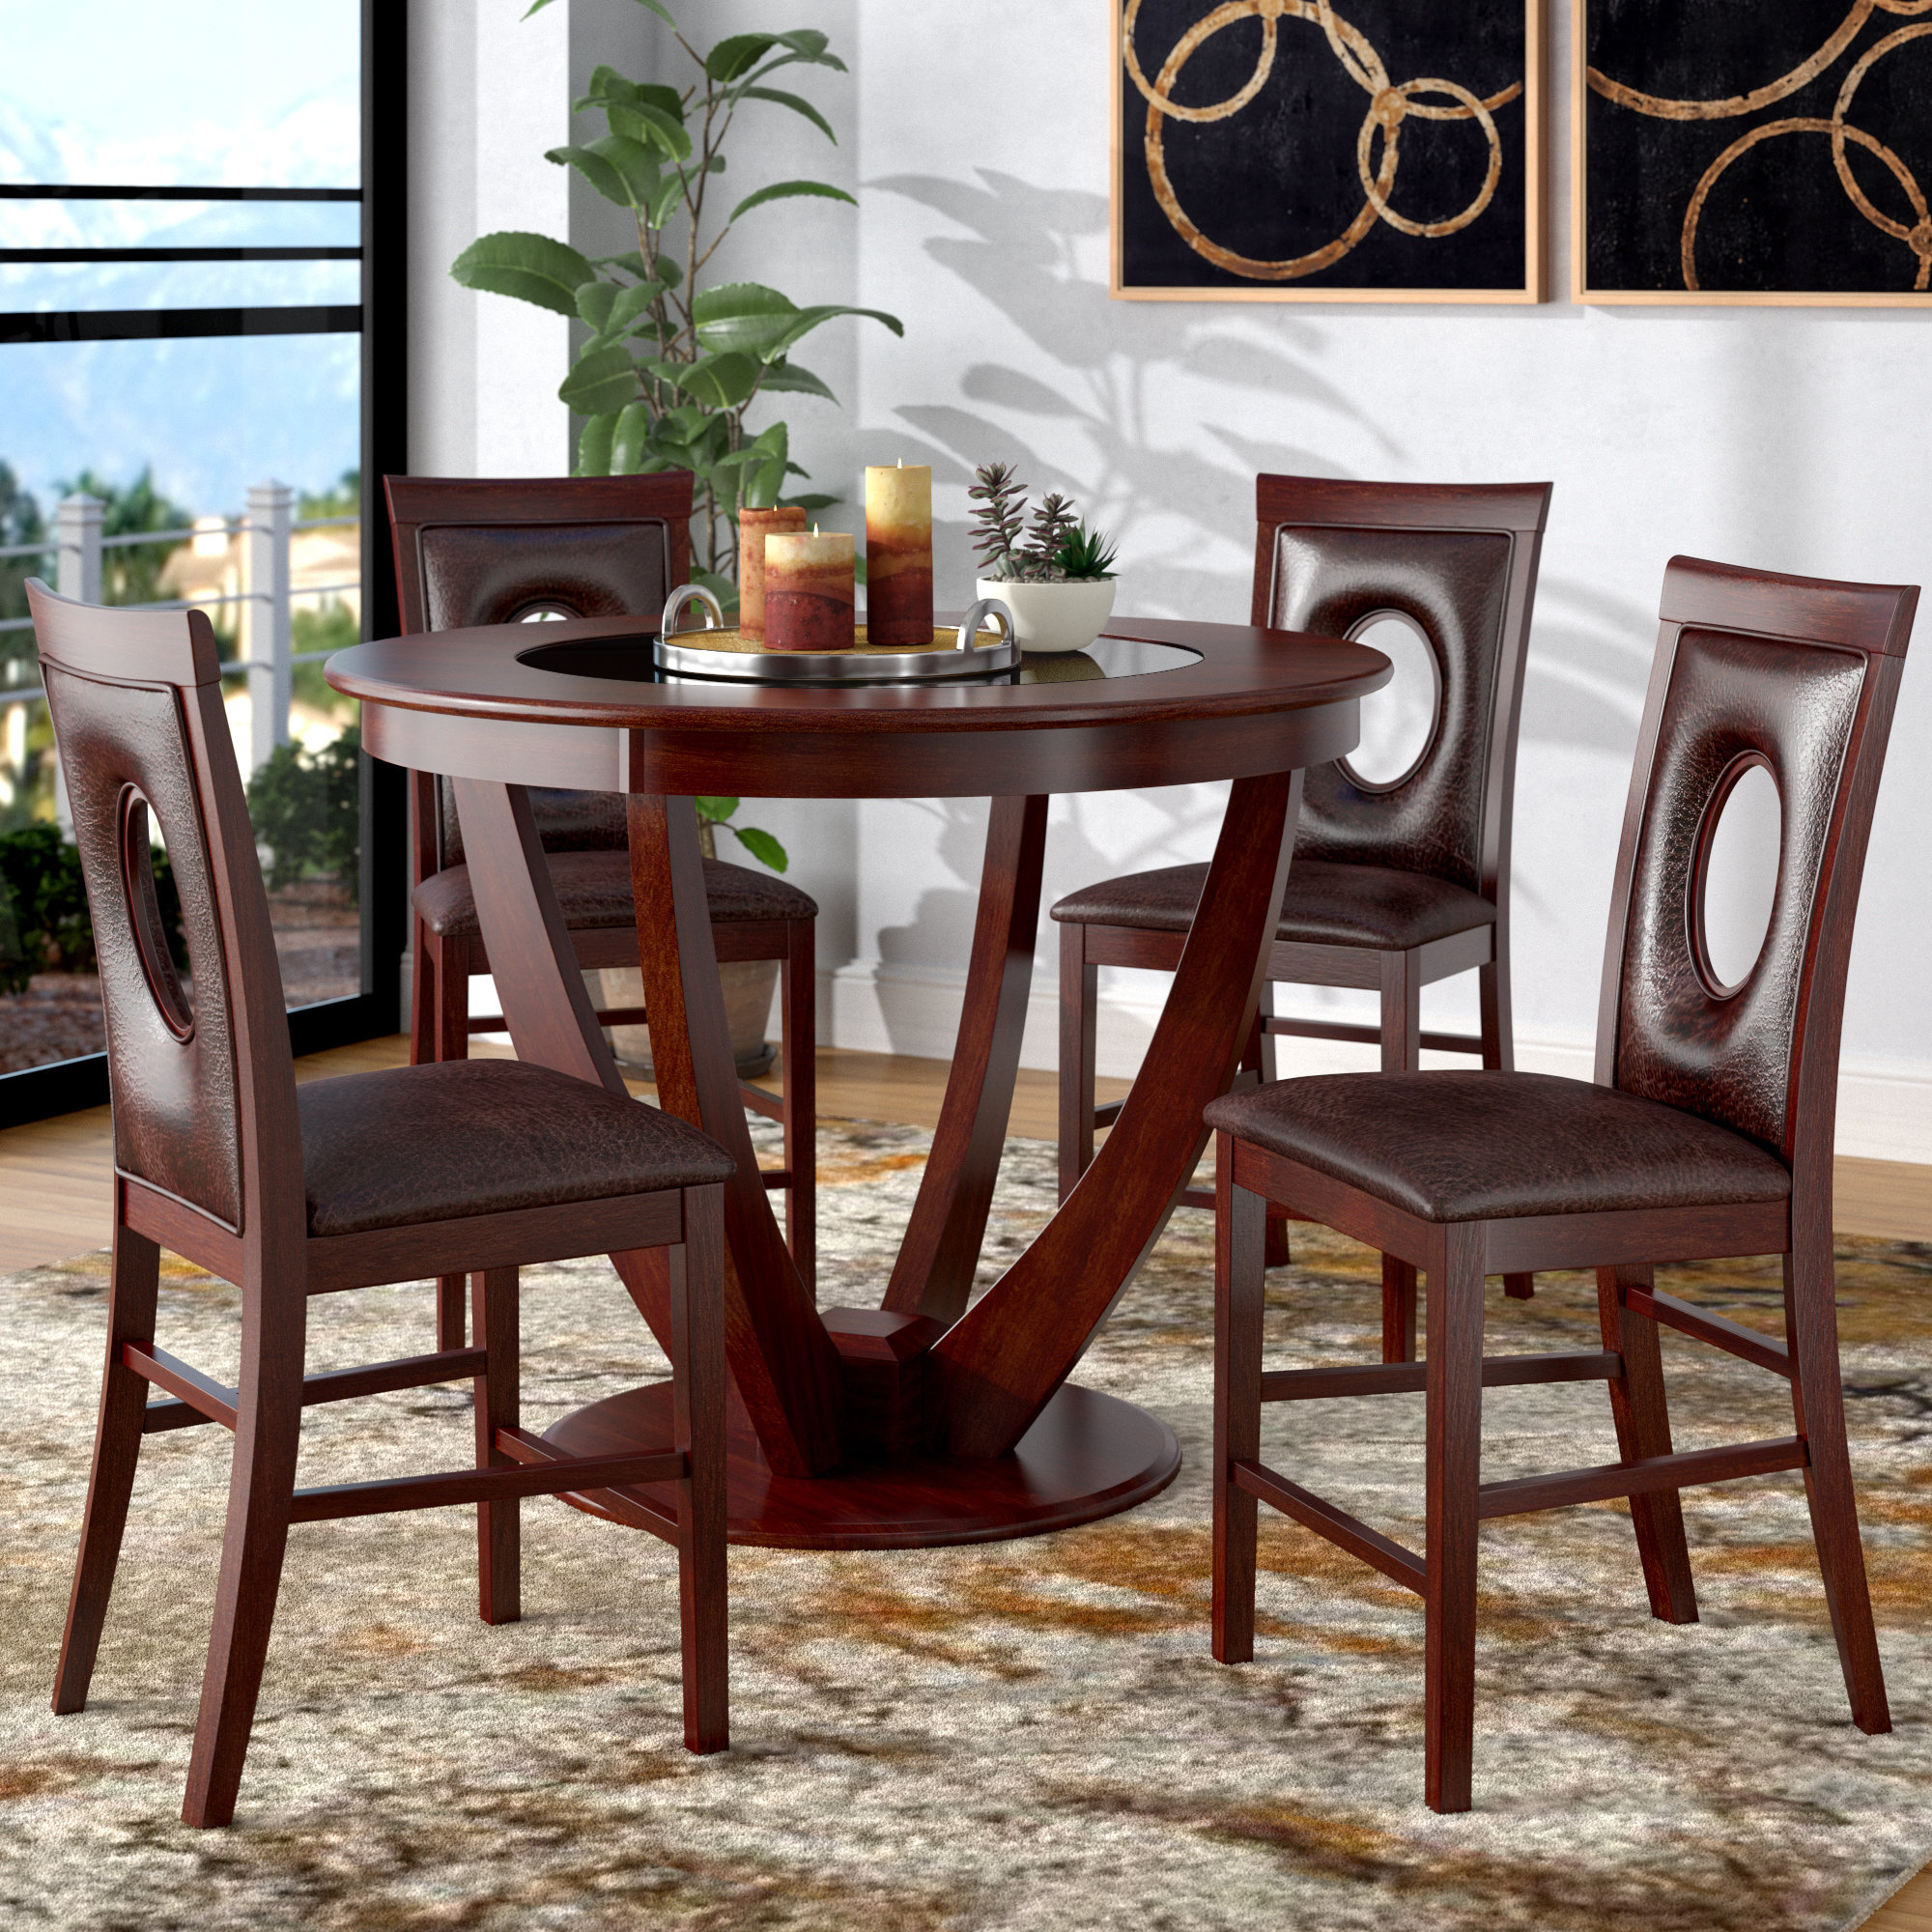 Preferred Mizpah 3 Piece Counter Height Dining Sets Regarding Latitude Run Depriest 5 Piece Counter Height Pub Table Set & Reviews (View 14 of 25)